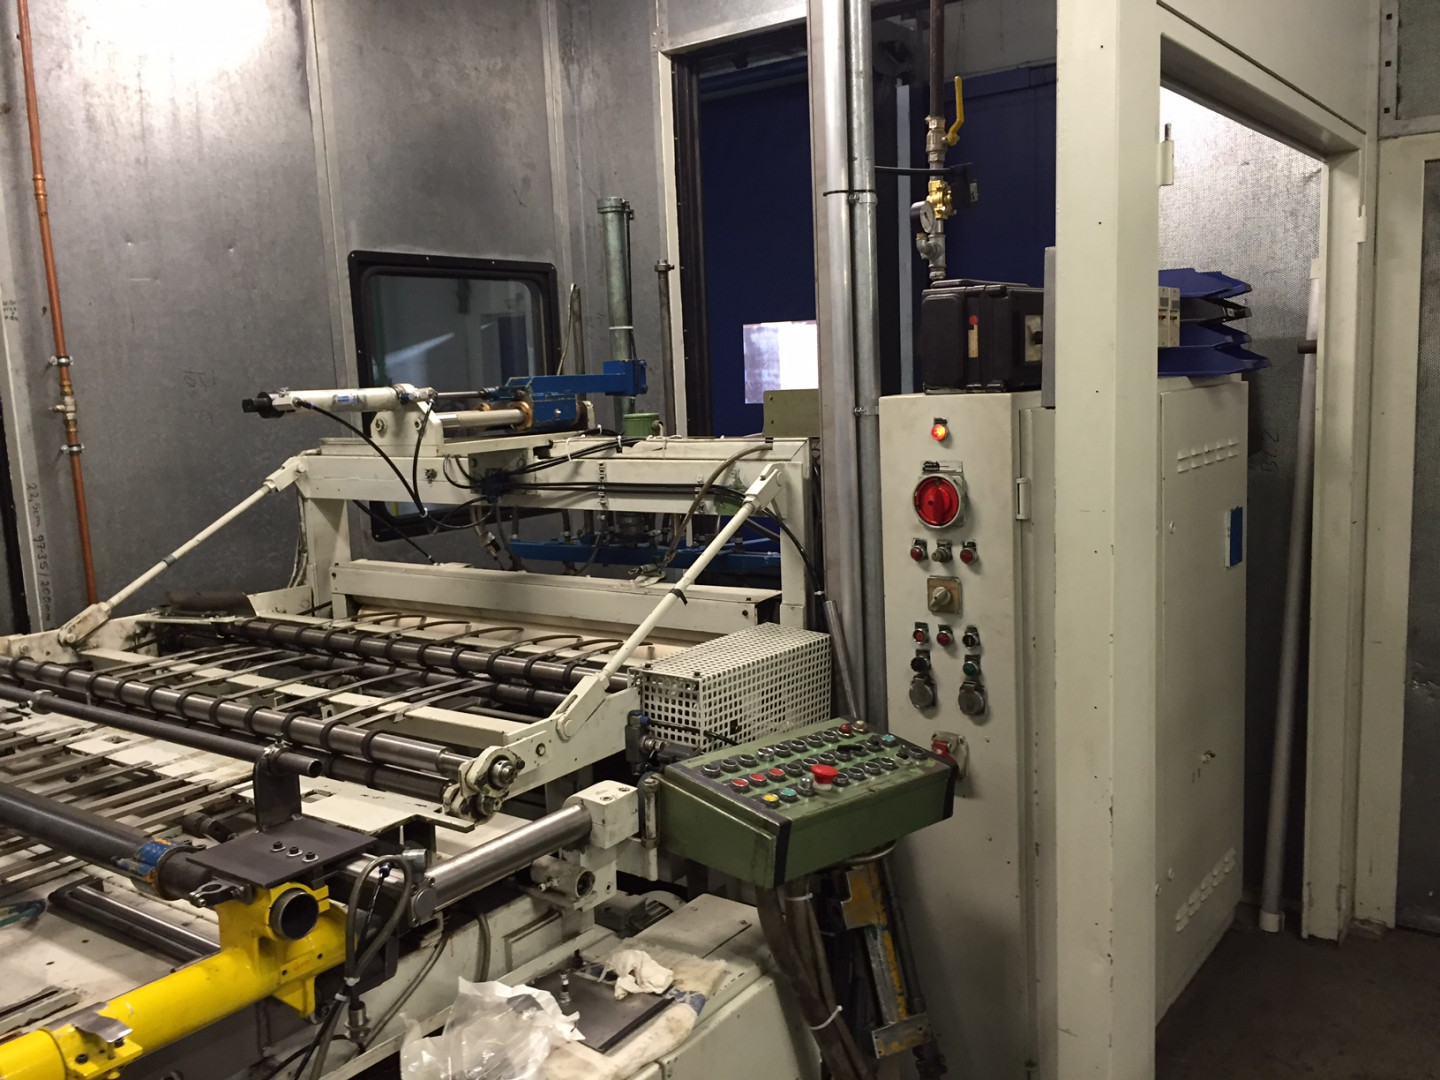 Naroska StAZI-NC sheetfeed press